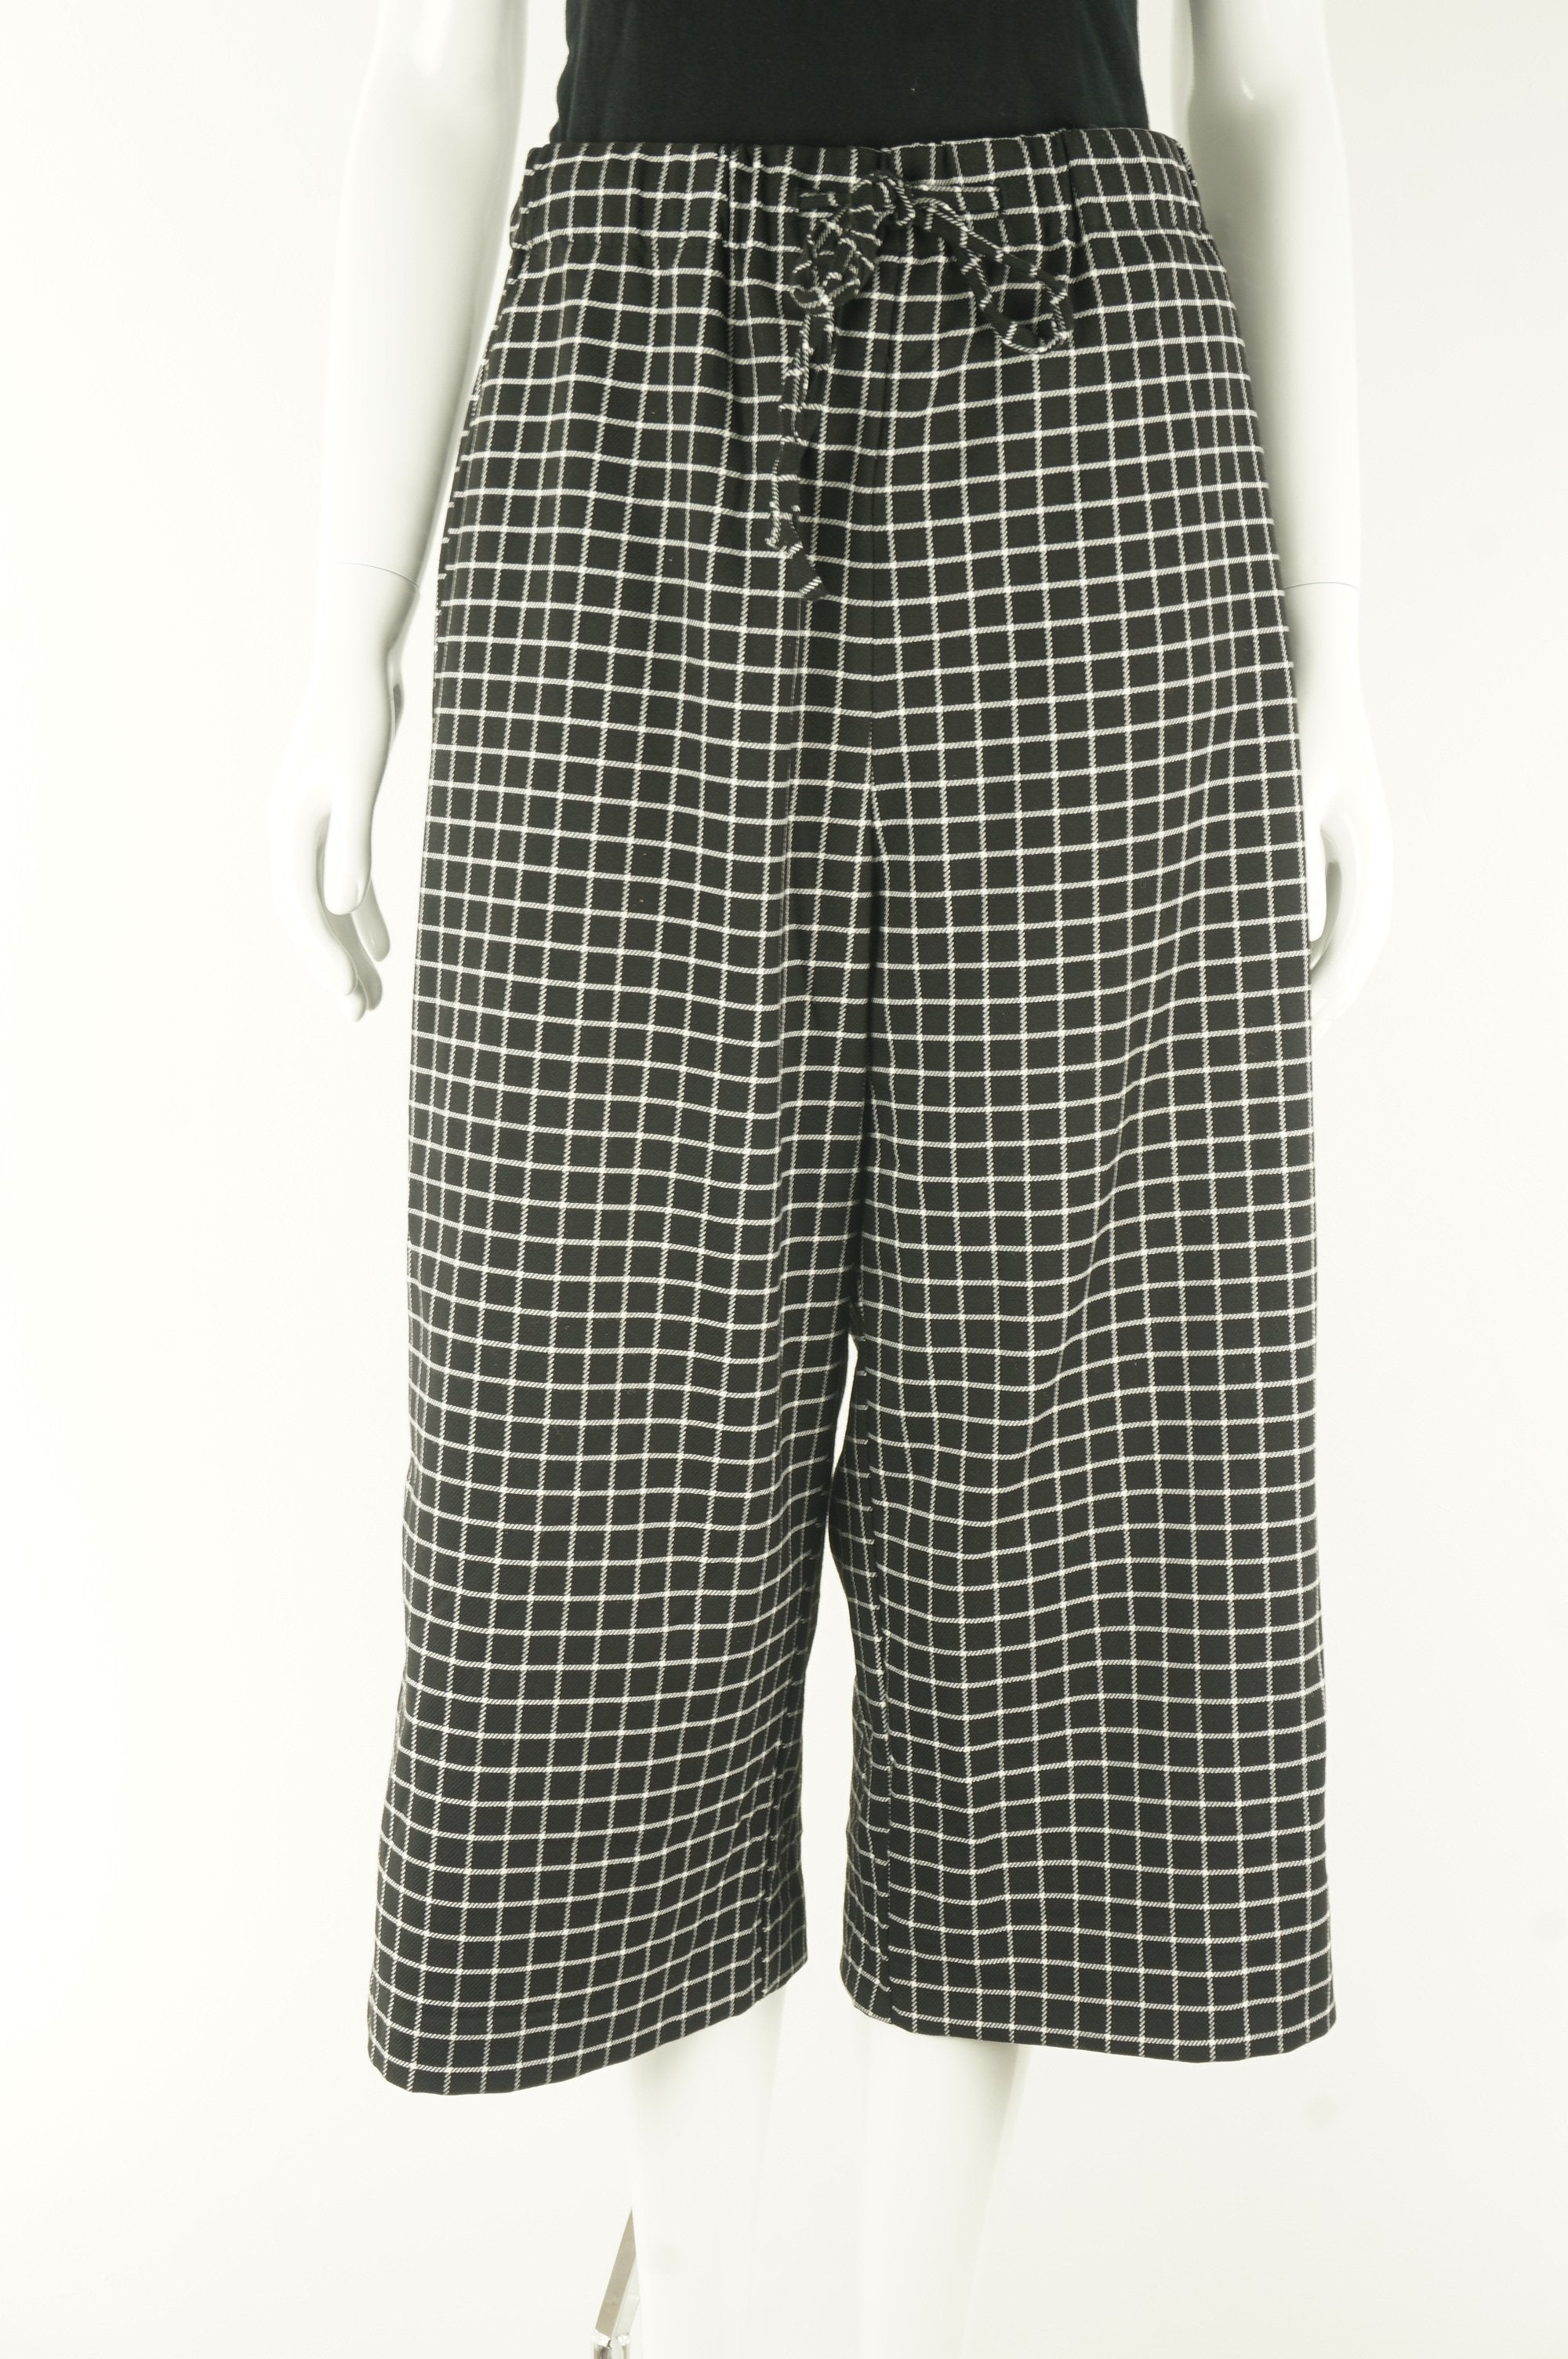 Monki Checked Wide Leg Pants With Elastic Waistband, High waisted wide legged pants are my new favorite! Why? For the exact moment after dinner when you feel overly stuffed but the pants are expandable and hides the food baby…, Black, White, 67% Polyester, 32% Viscose, 1% Elastane, women's Pants, women's Black, White Pants, Monki women's Pants, Women's wide legged checker  capri pants, women's loose fitting checker capri trousers